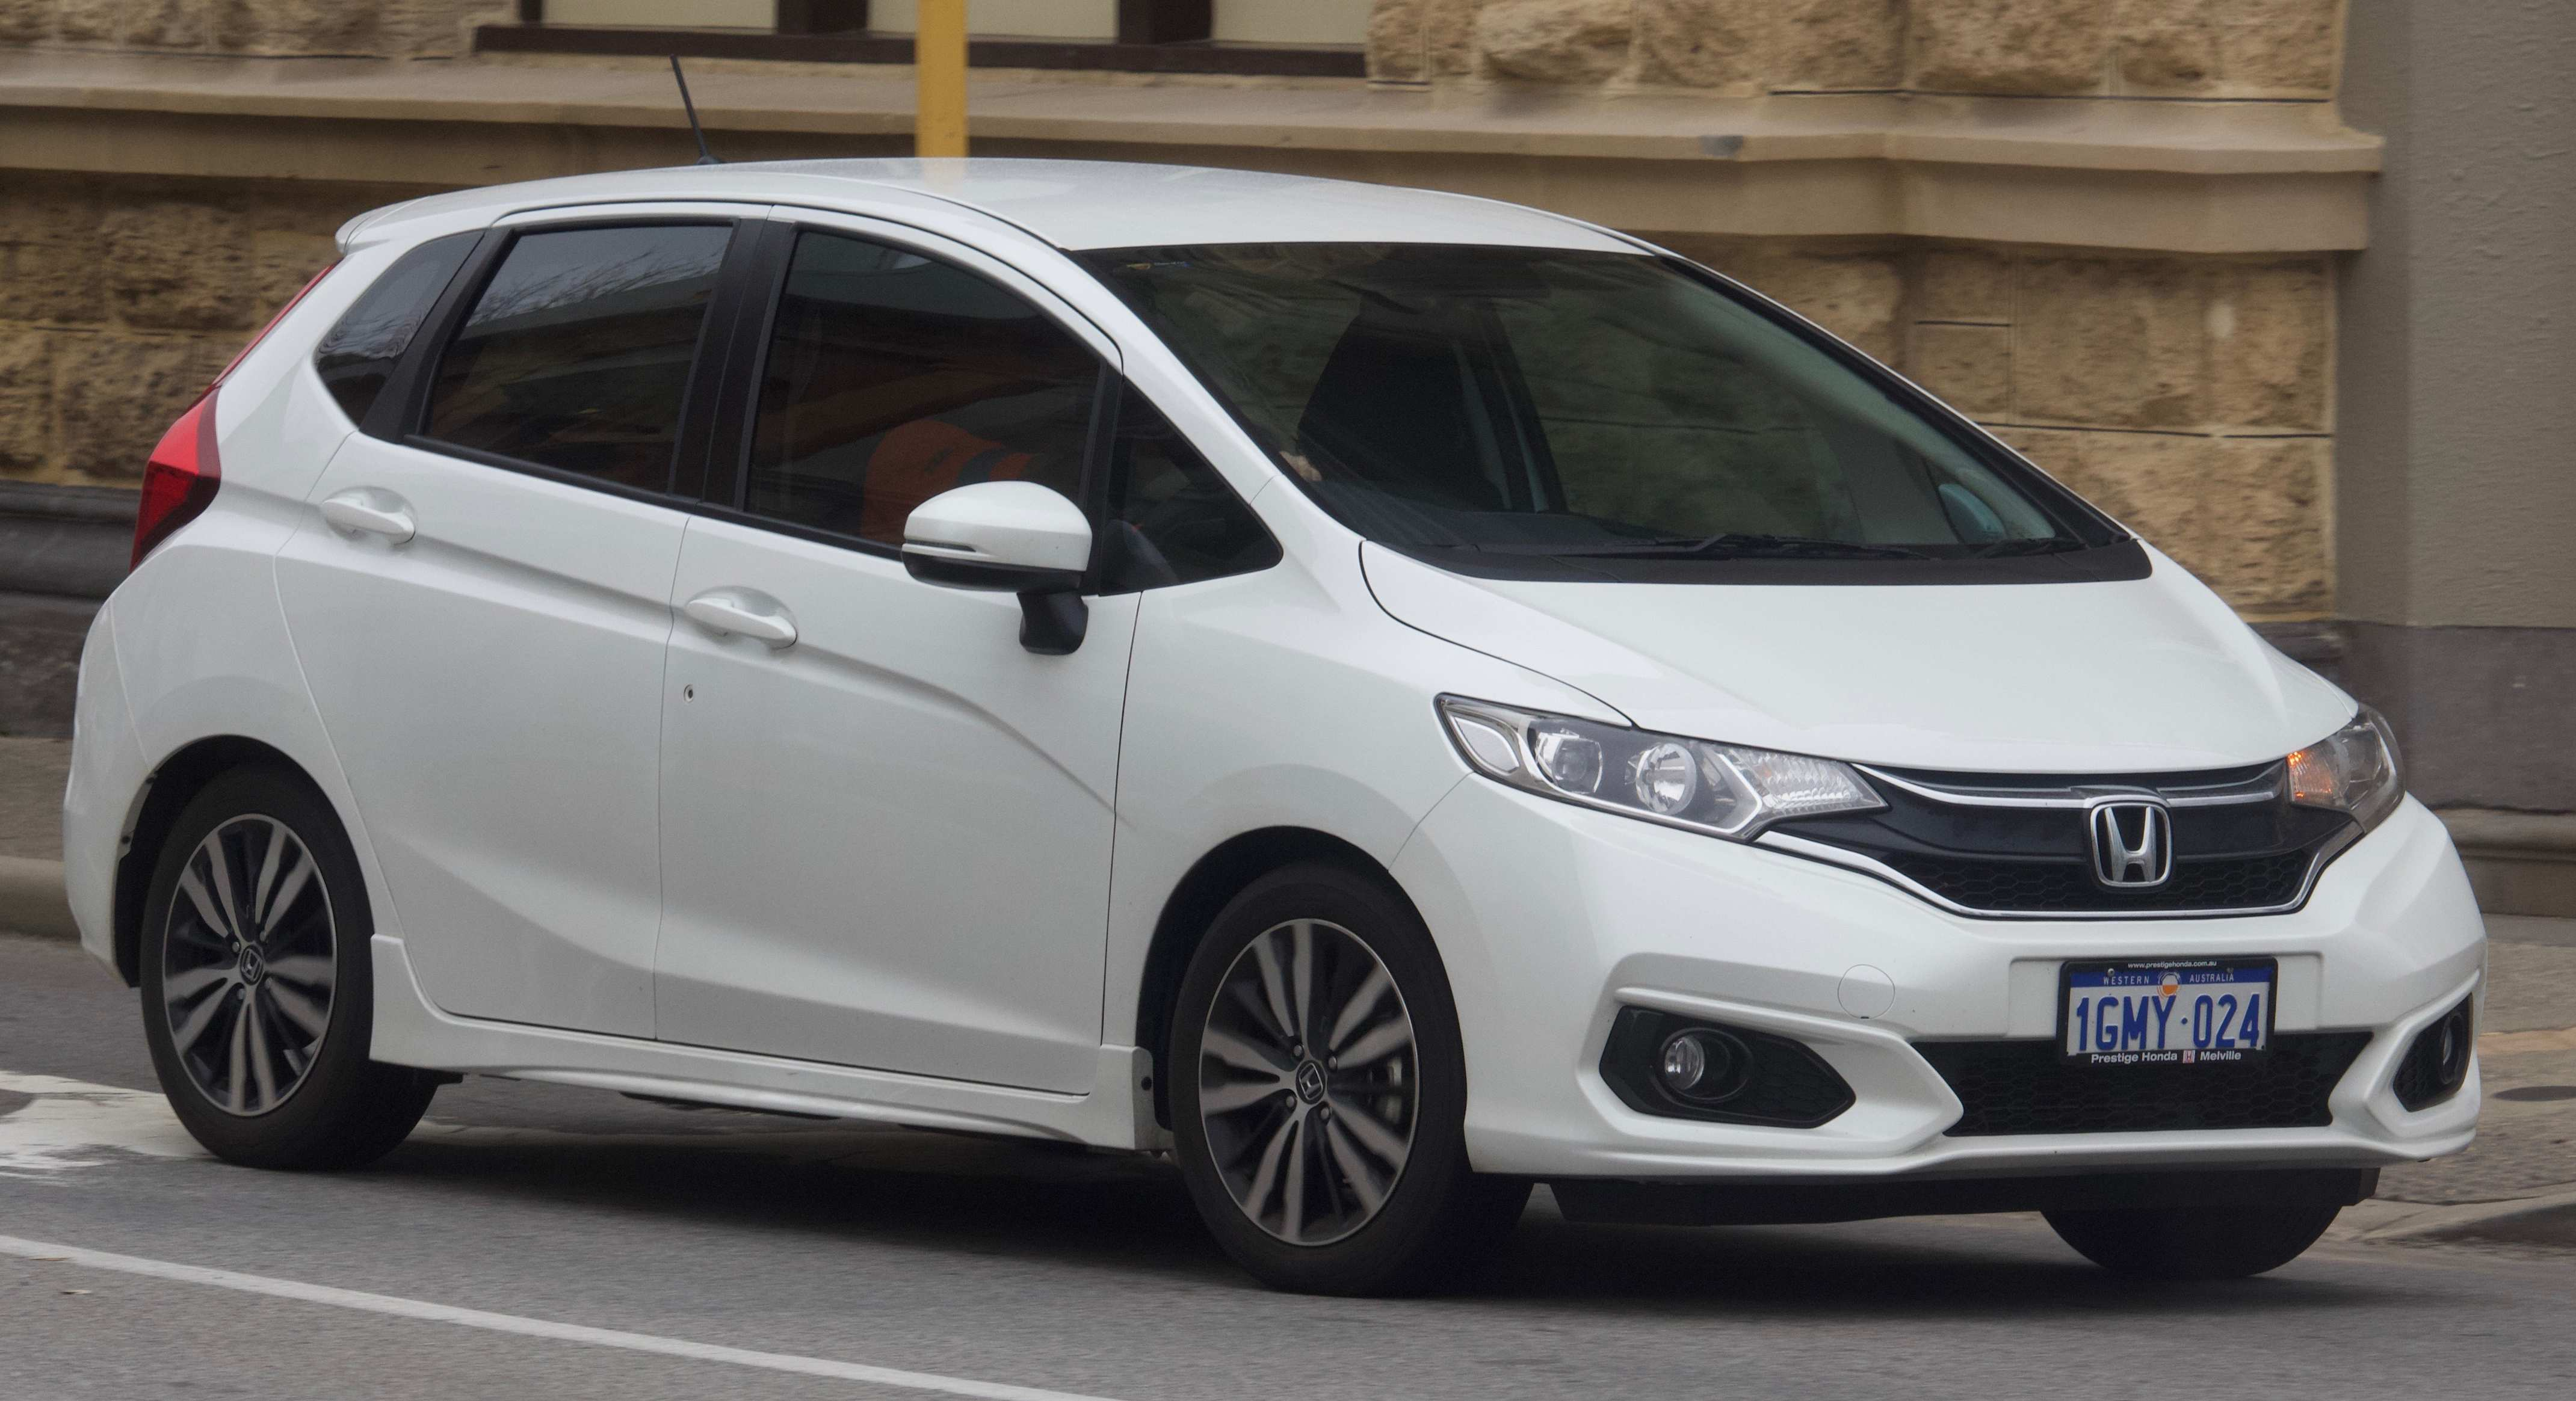 23 Concept of Honda To Make English Official Language By 2020 Picture for Honda To Make English Official Language By 2020